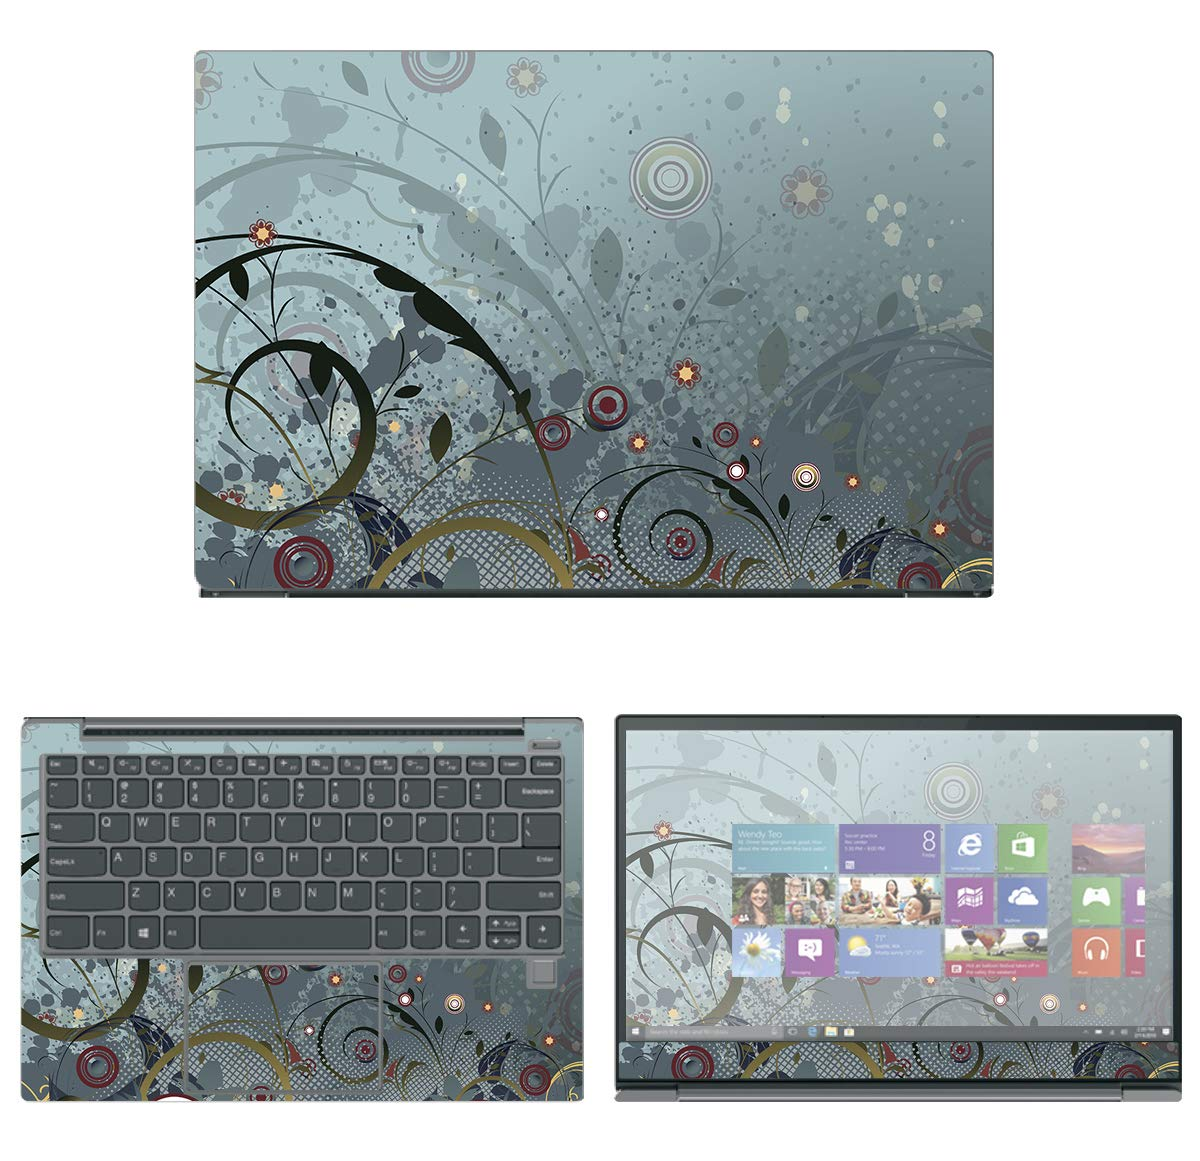 decalrus - Protective Decal Skin Sticker for Lenovo IdeaPad 730S (13.3'' Screen) case Cover wrap LEideaPad730S-103